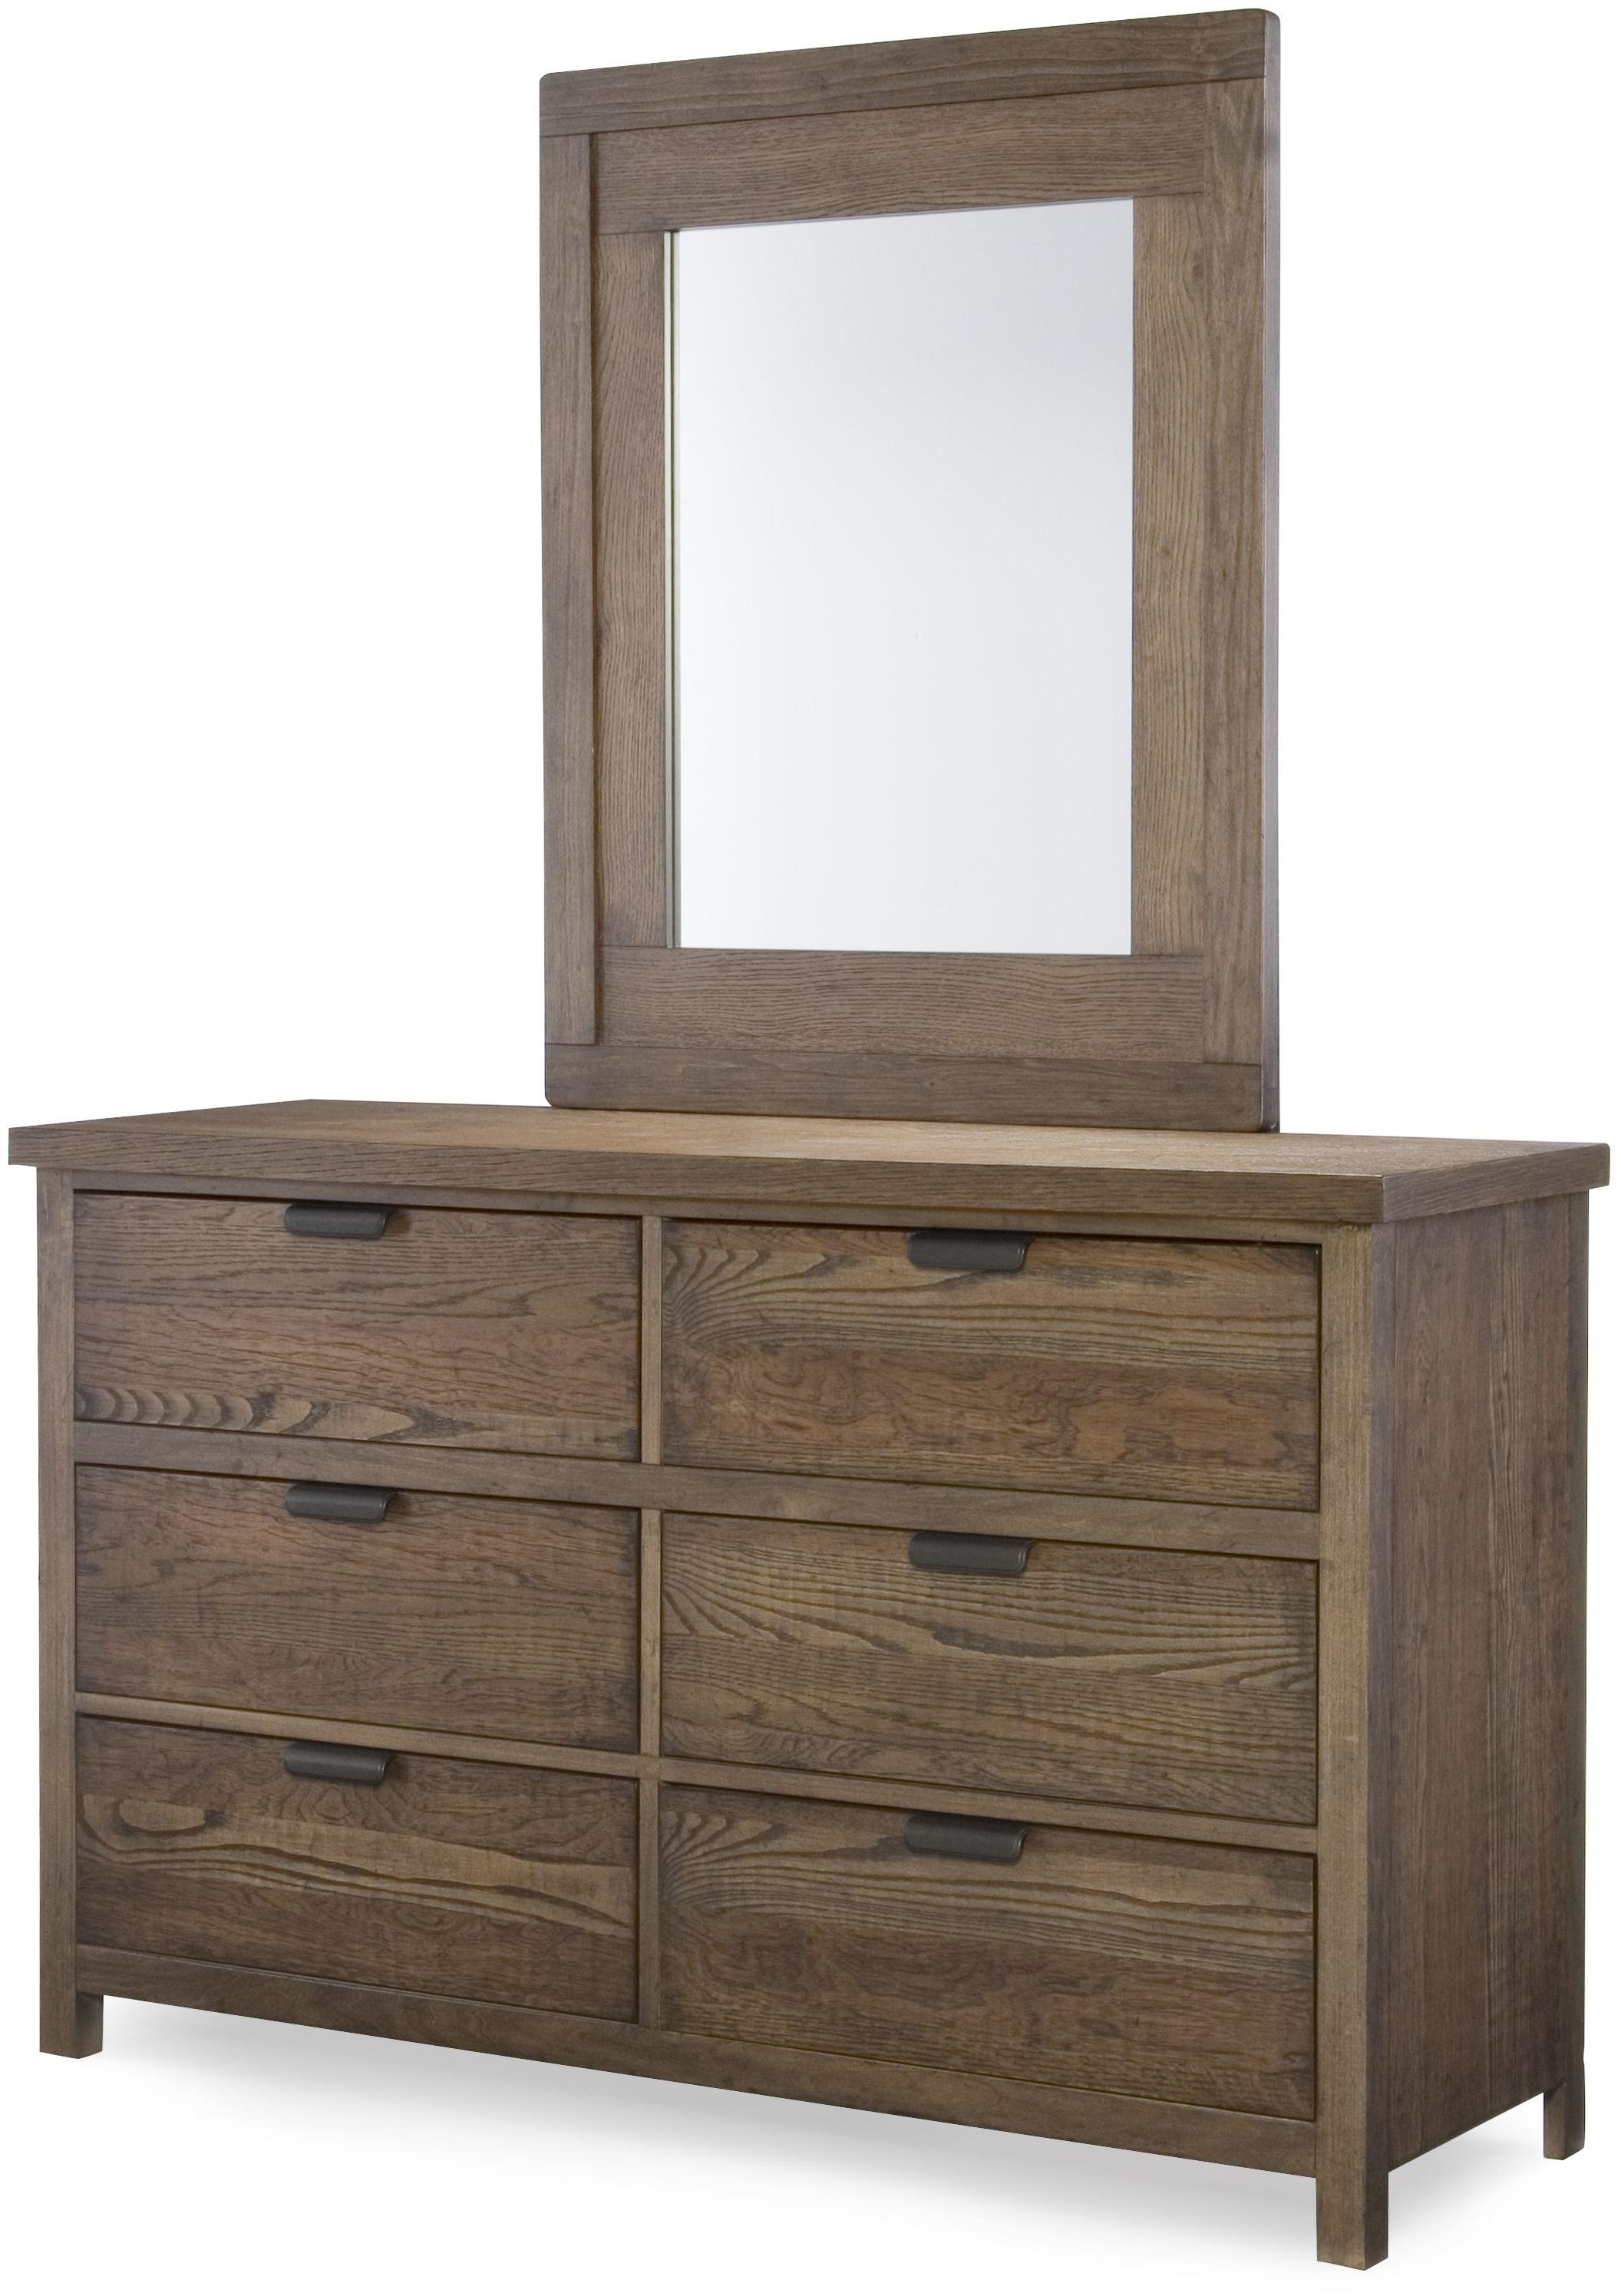 Legacy Classic Kids Fulton County Dresser and Mirror Set - Item Number: 5900-1100+0100